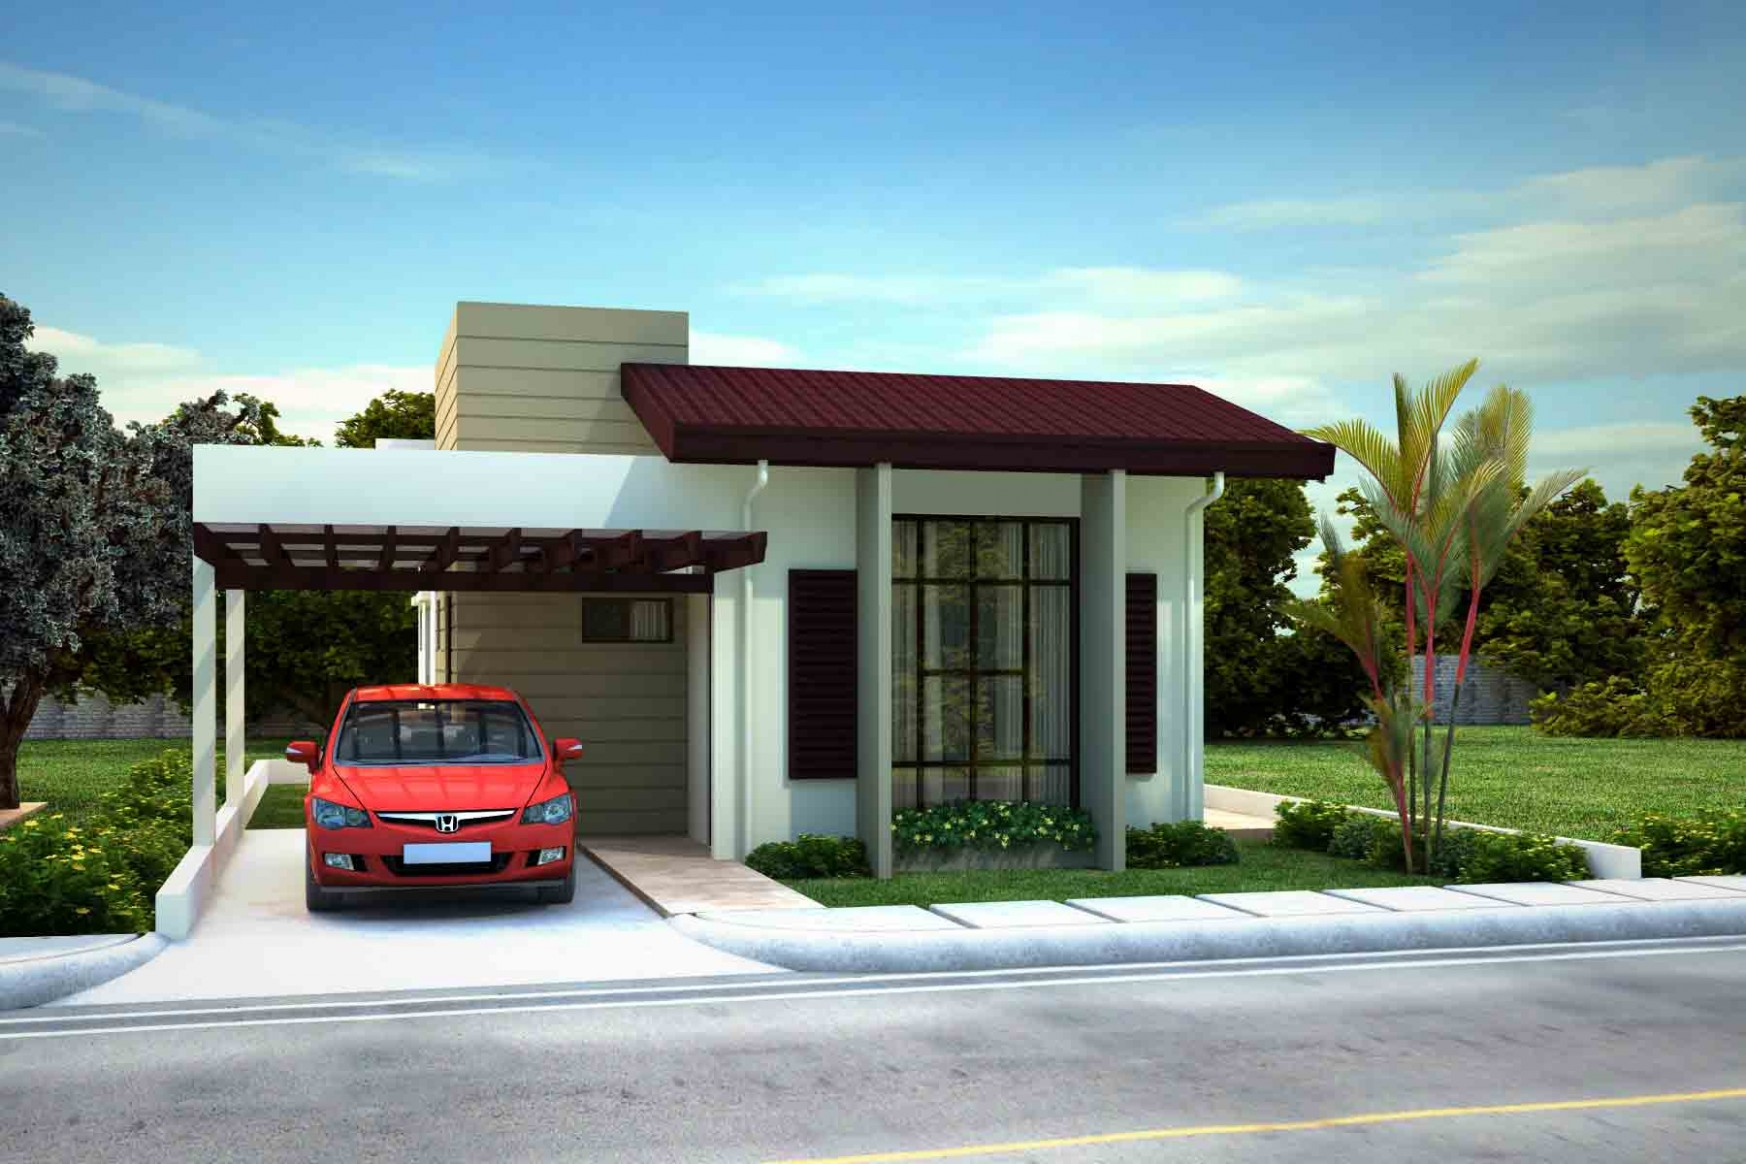 1517816322-detached-carport-cool-custom-with-detached-carport-need-a-new-garage-maybe-a-three-car-detached-garage-portico-attached-carpor-carport-designs-philippines.jpg